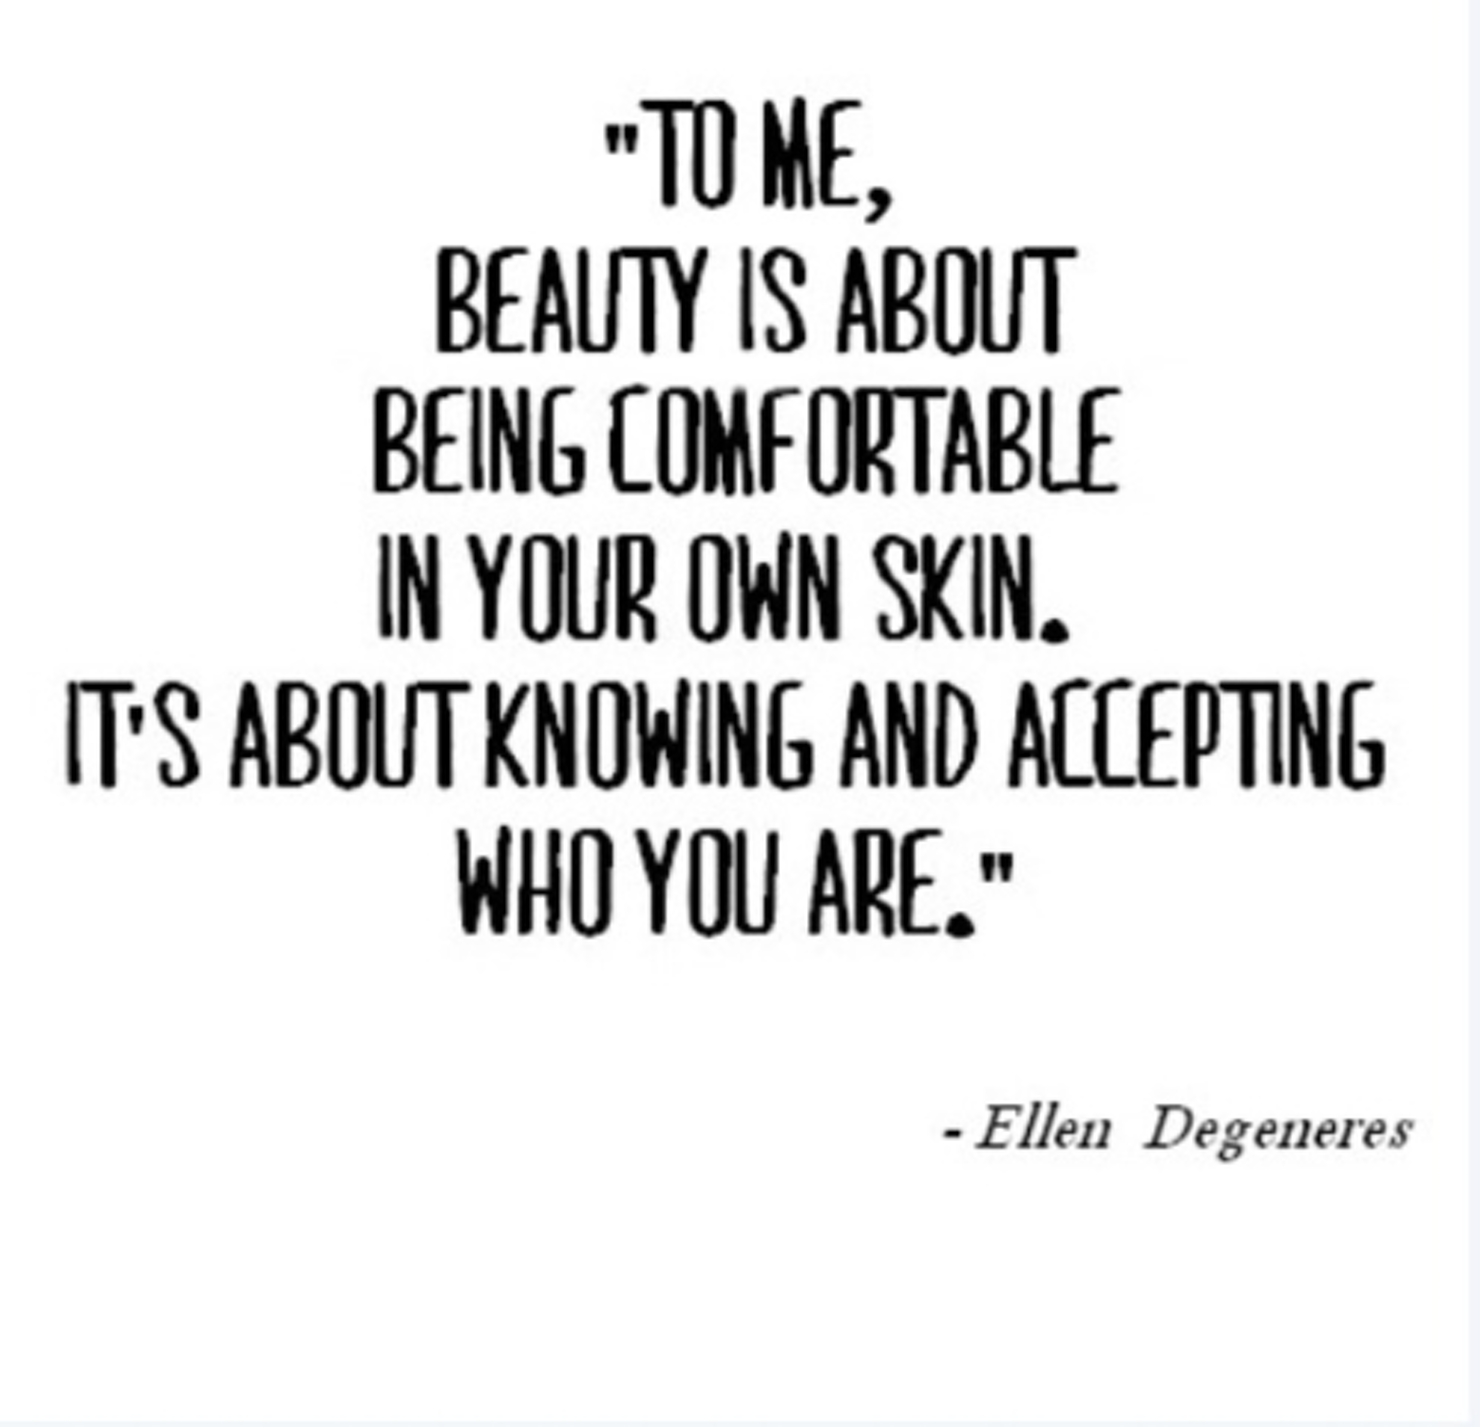 Body Image Quotes Classy 20 Rad Body Image Quotes To Inspire All The Feels  Pinterest  Body